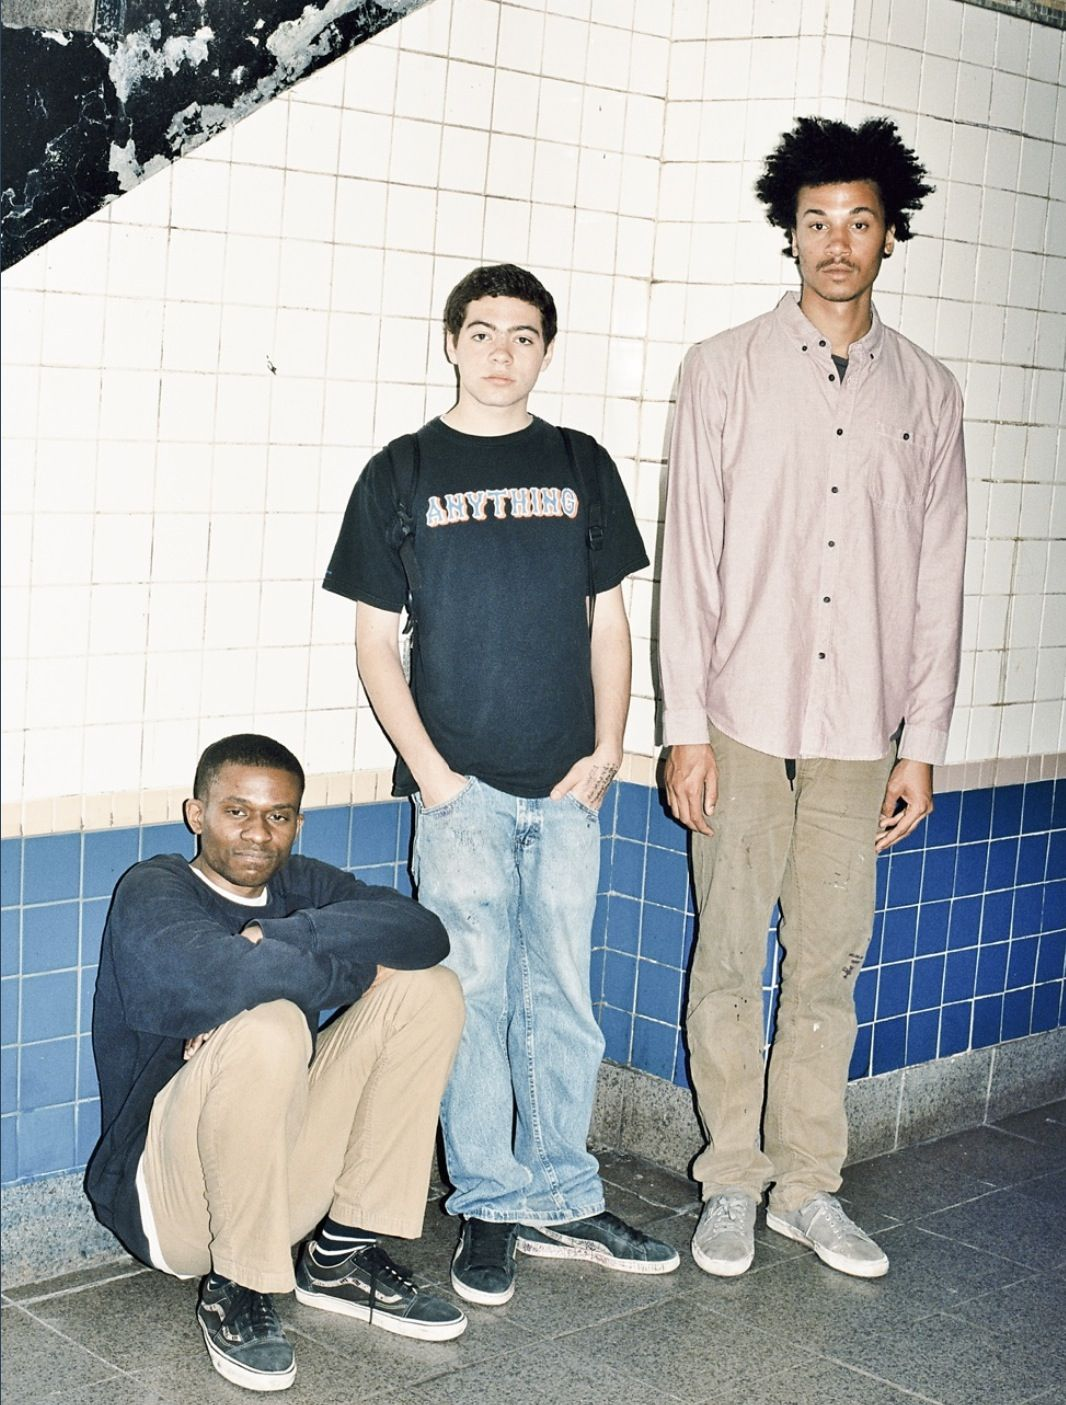 Ratking ! New York City's New Generation Of Real Hip Hop